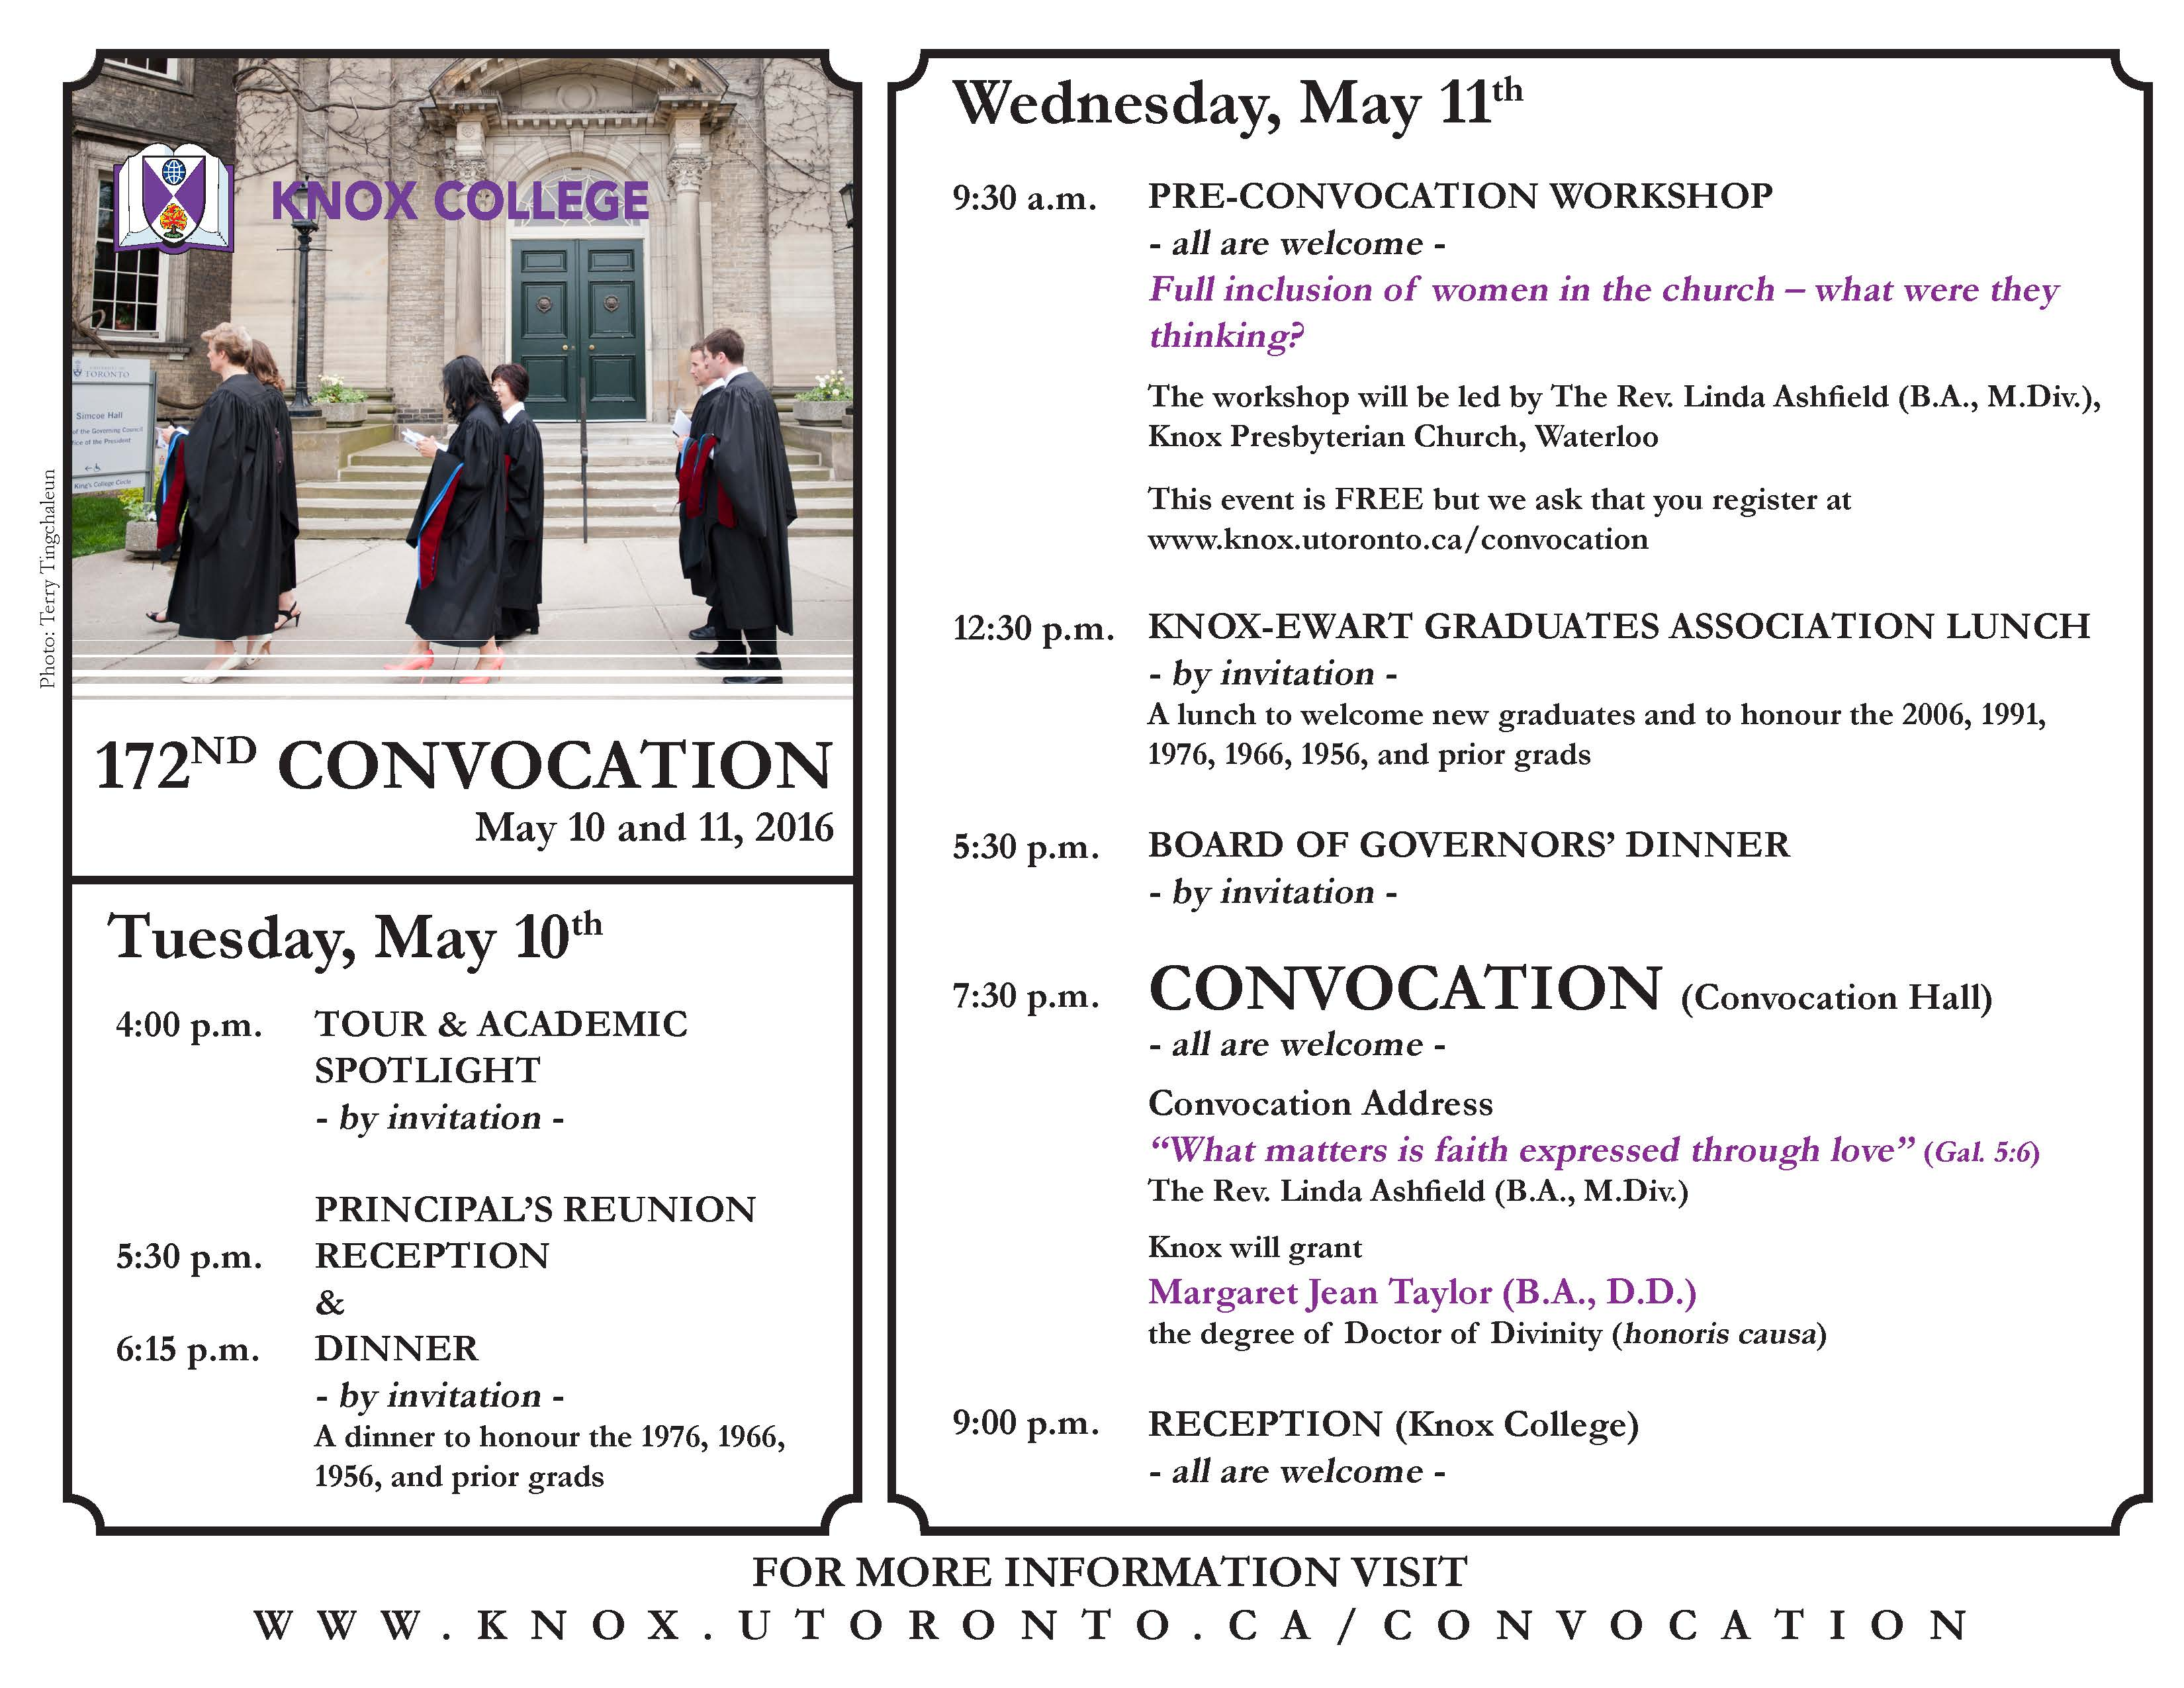 Knox College's 172nd Convocation - Schedule